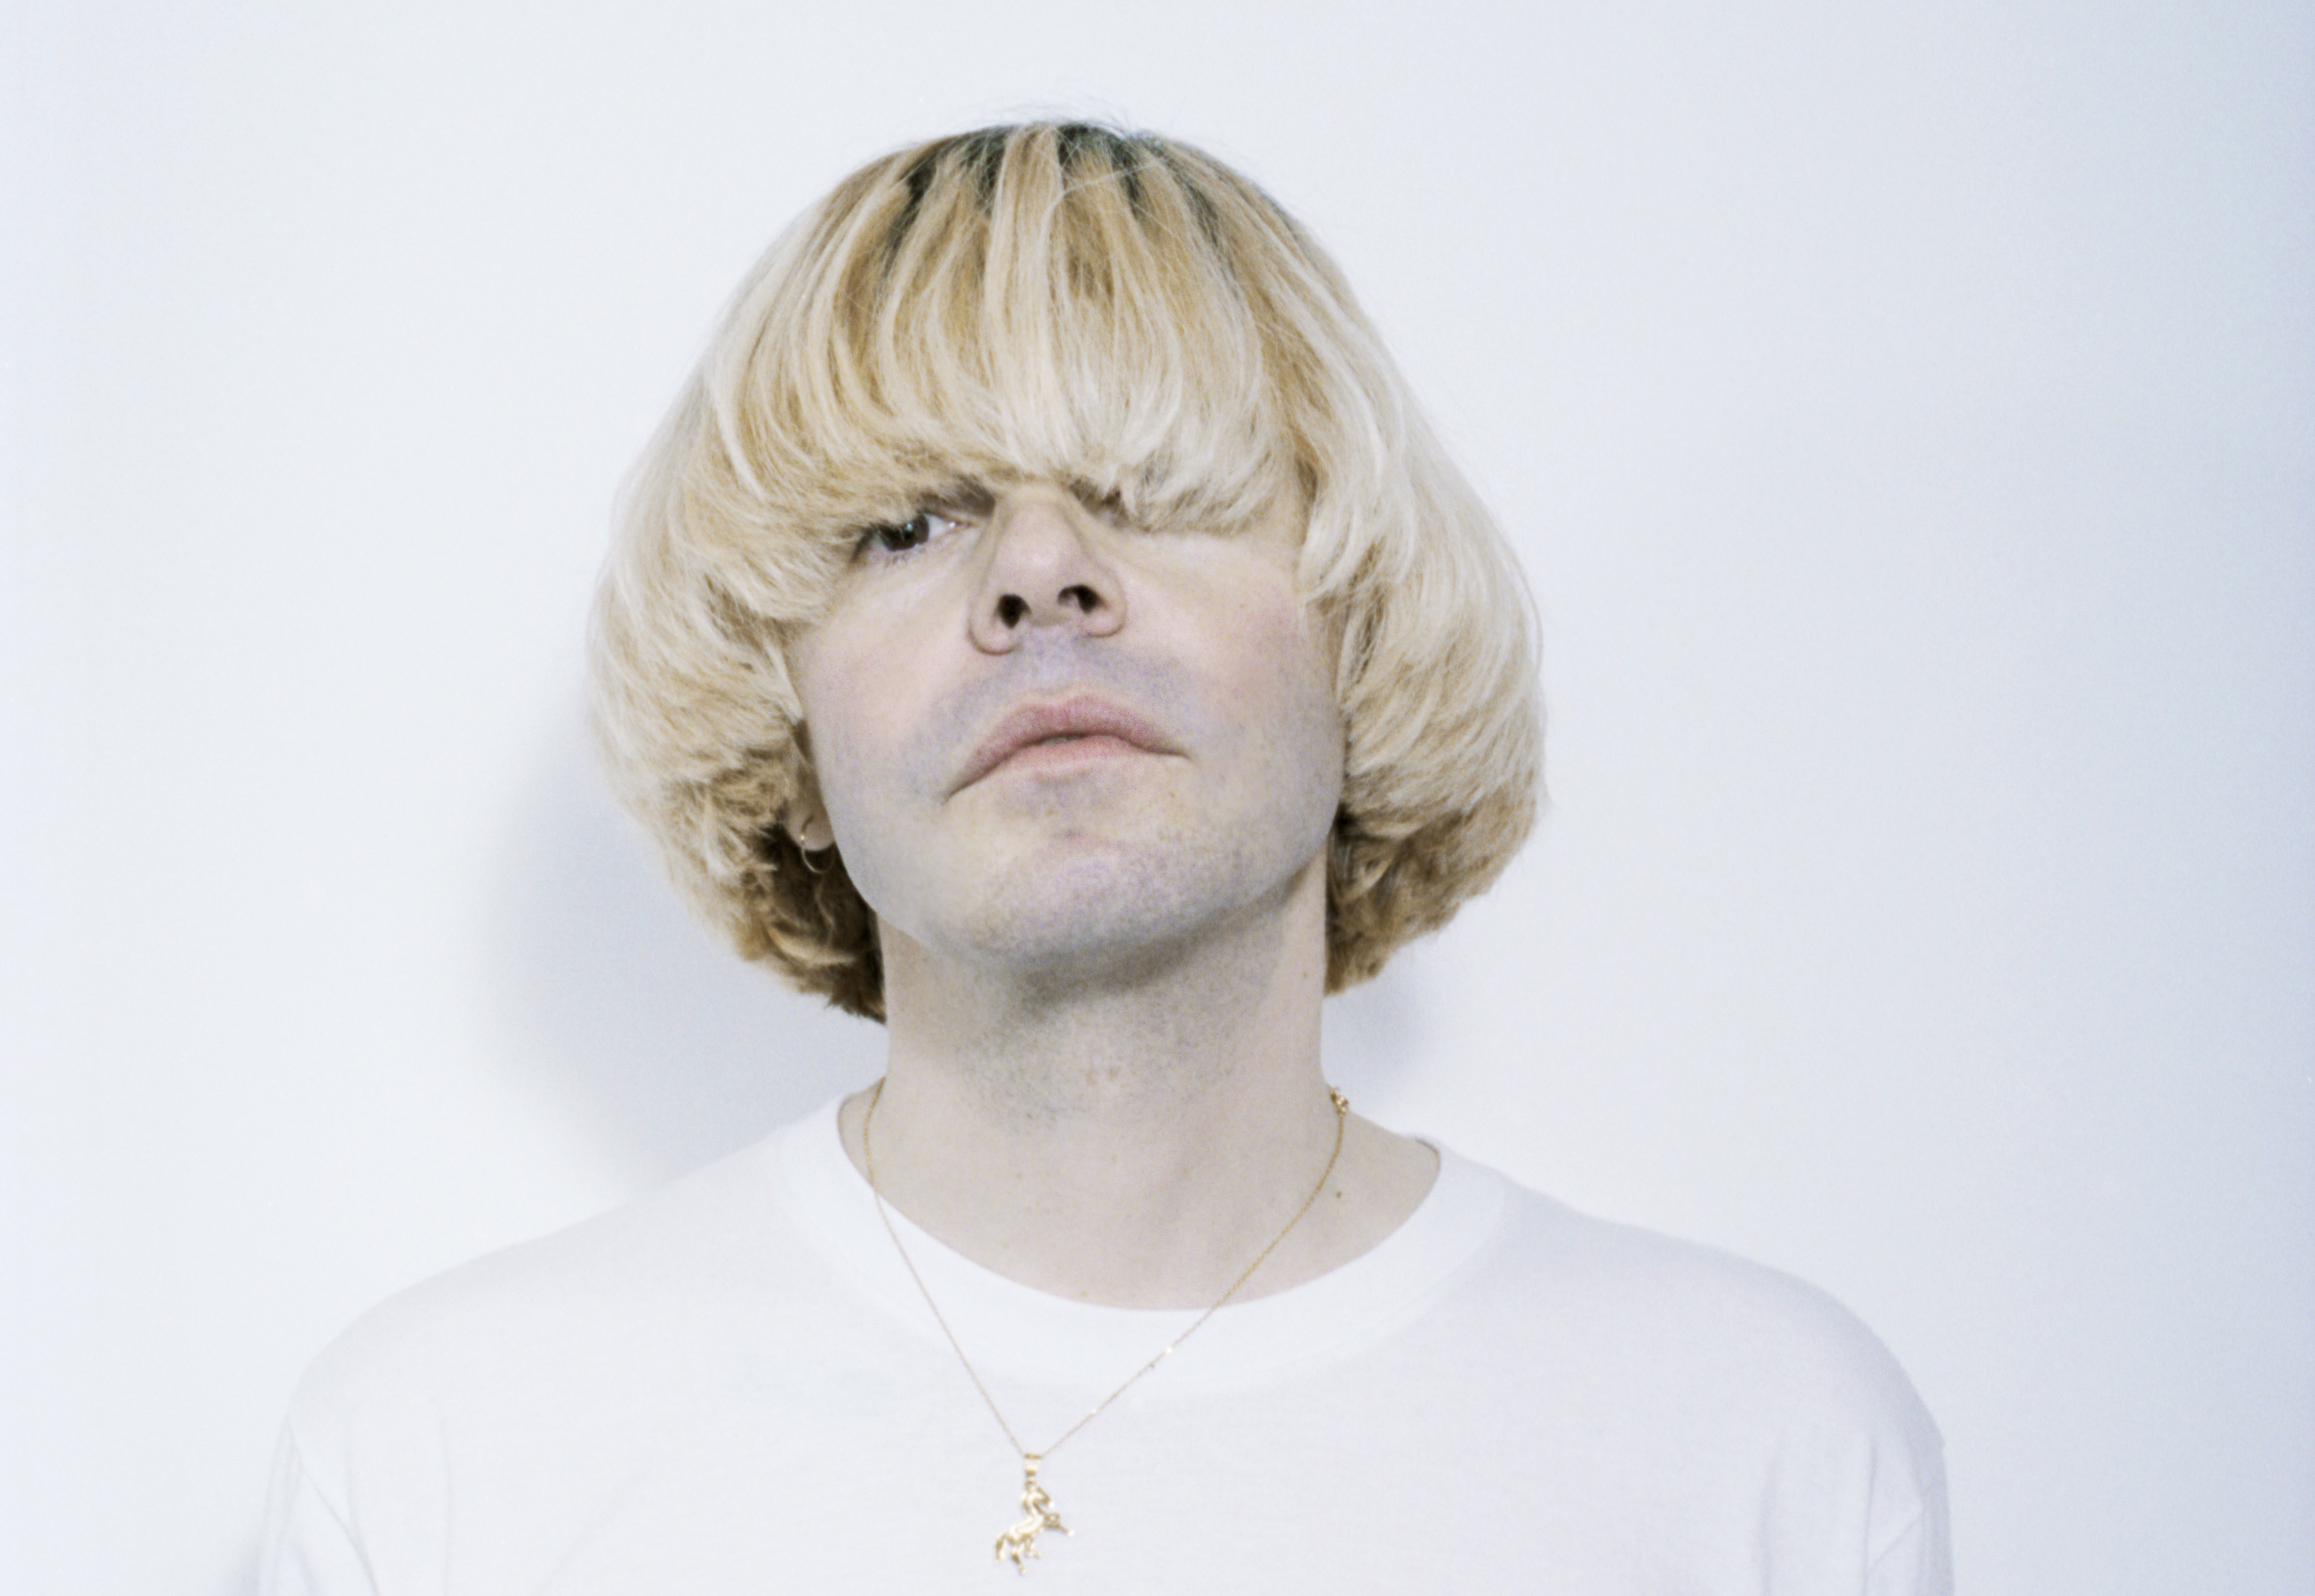 NEWS: Independent Venue Week returns in January with Tim Burgess as ambassador